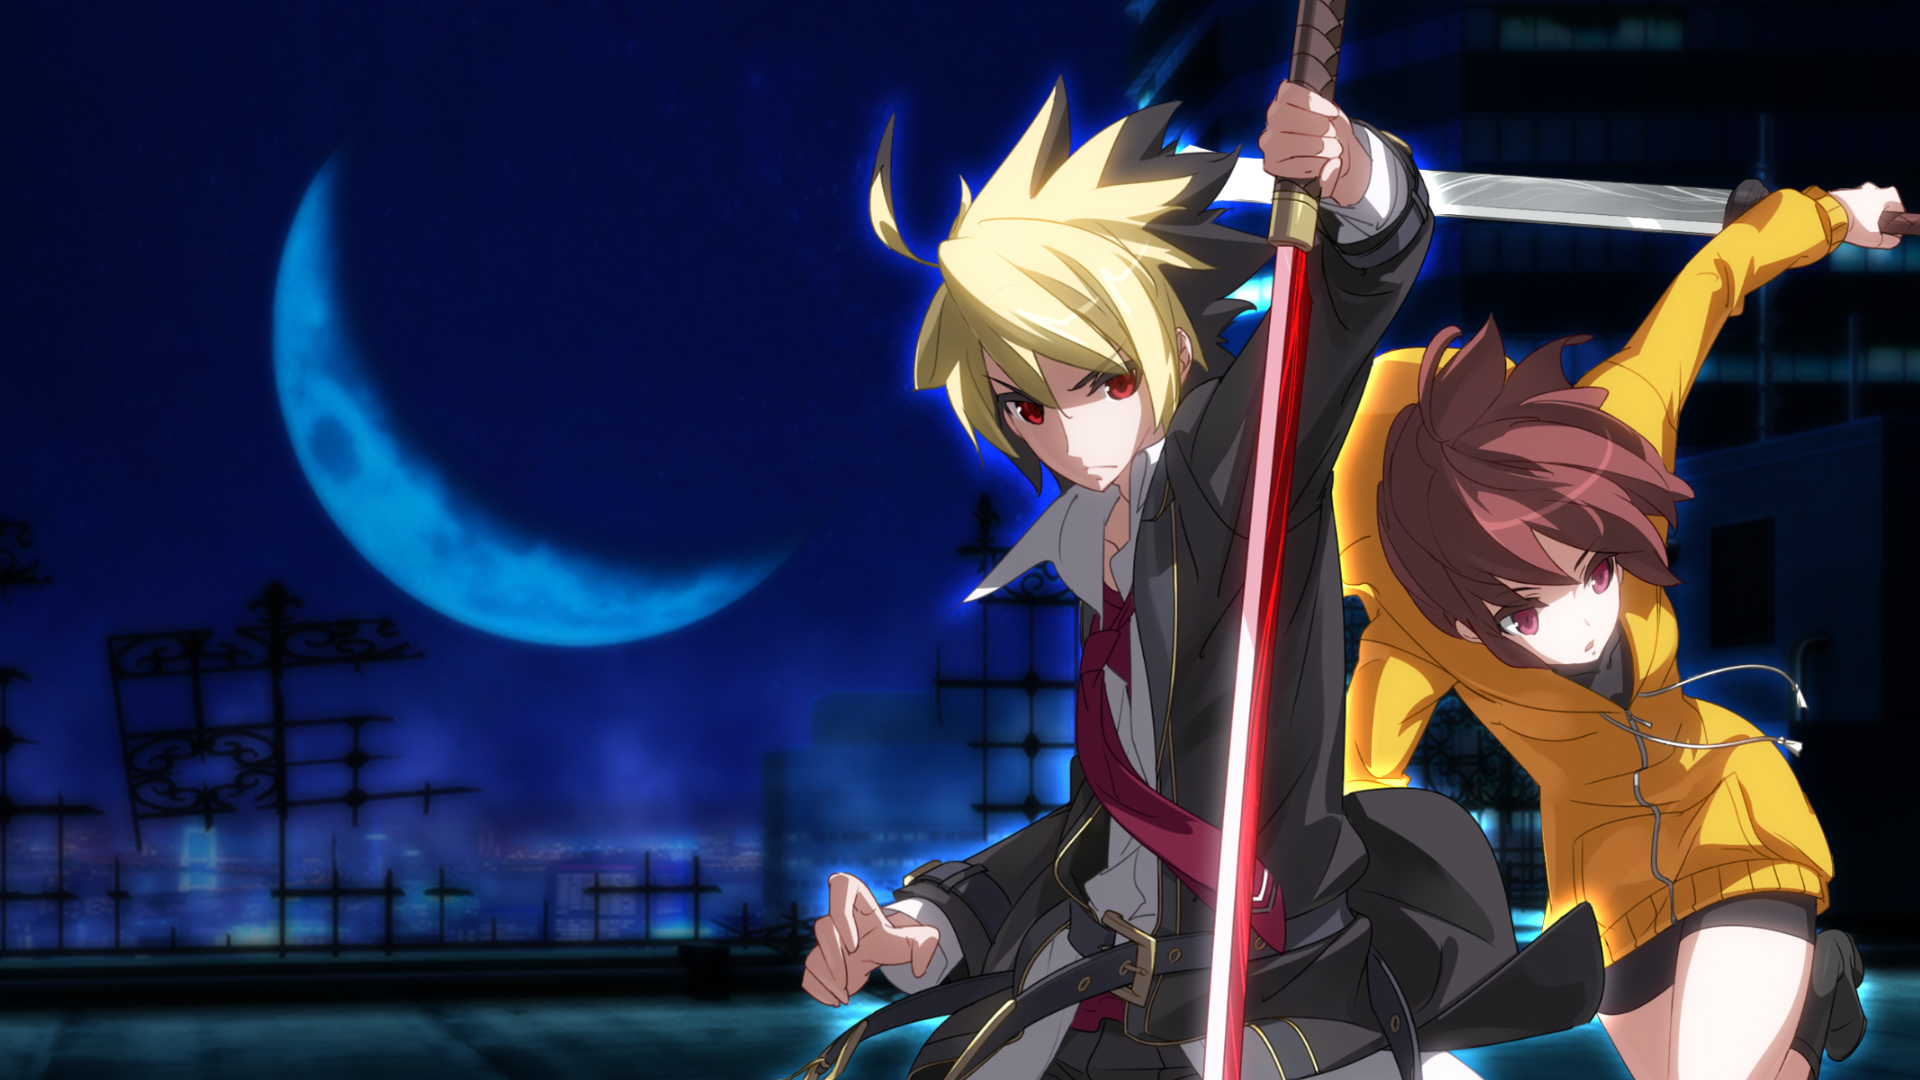 Under Night In Birth Exe Late St 2018 Promotional Art